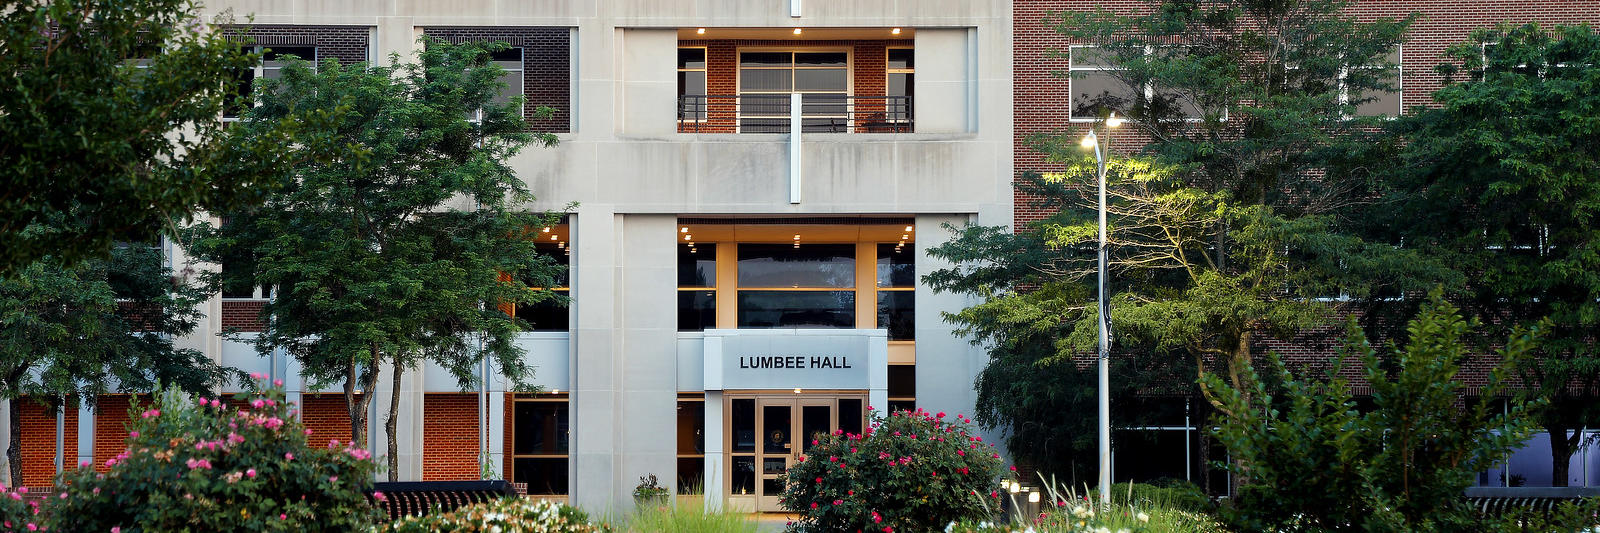 Lumbee Hall